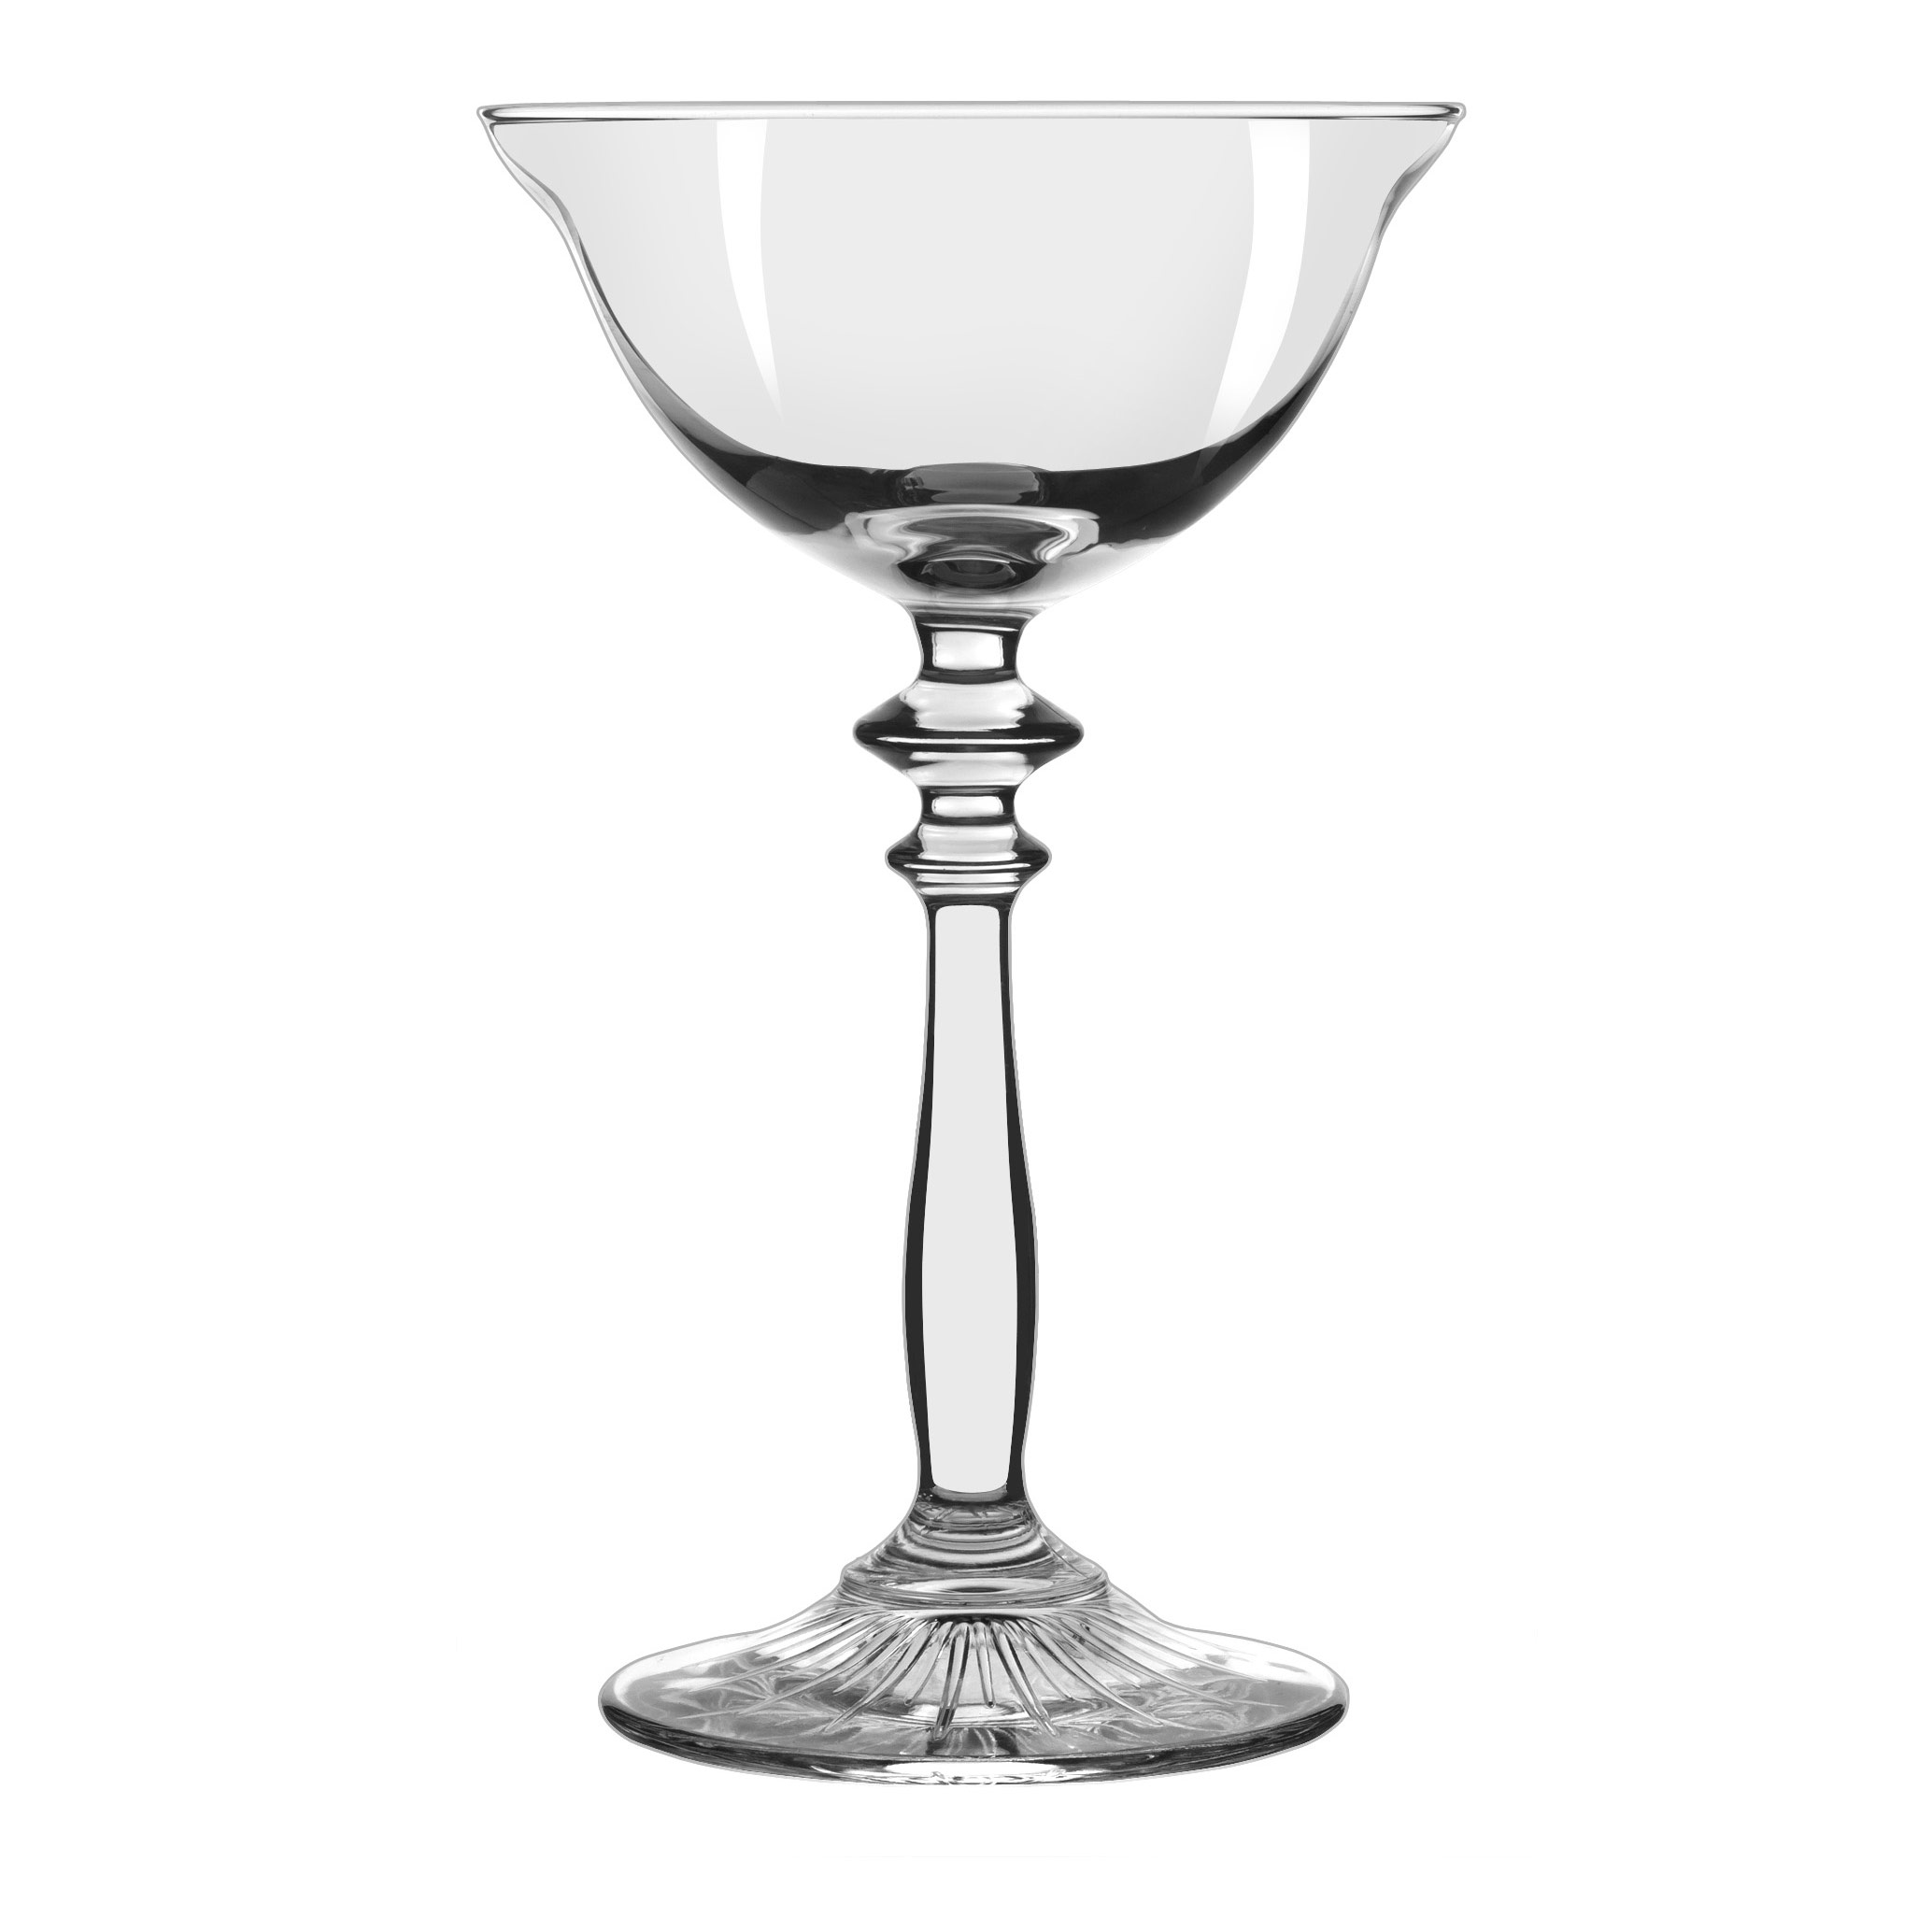 Libbey Glass 501308 glass, cocktail / martini